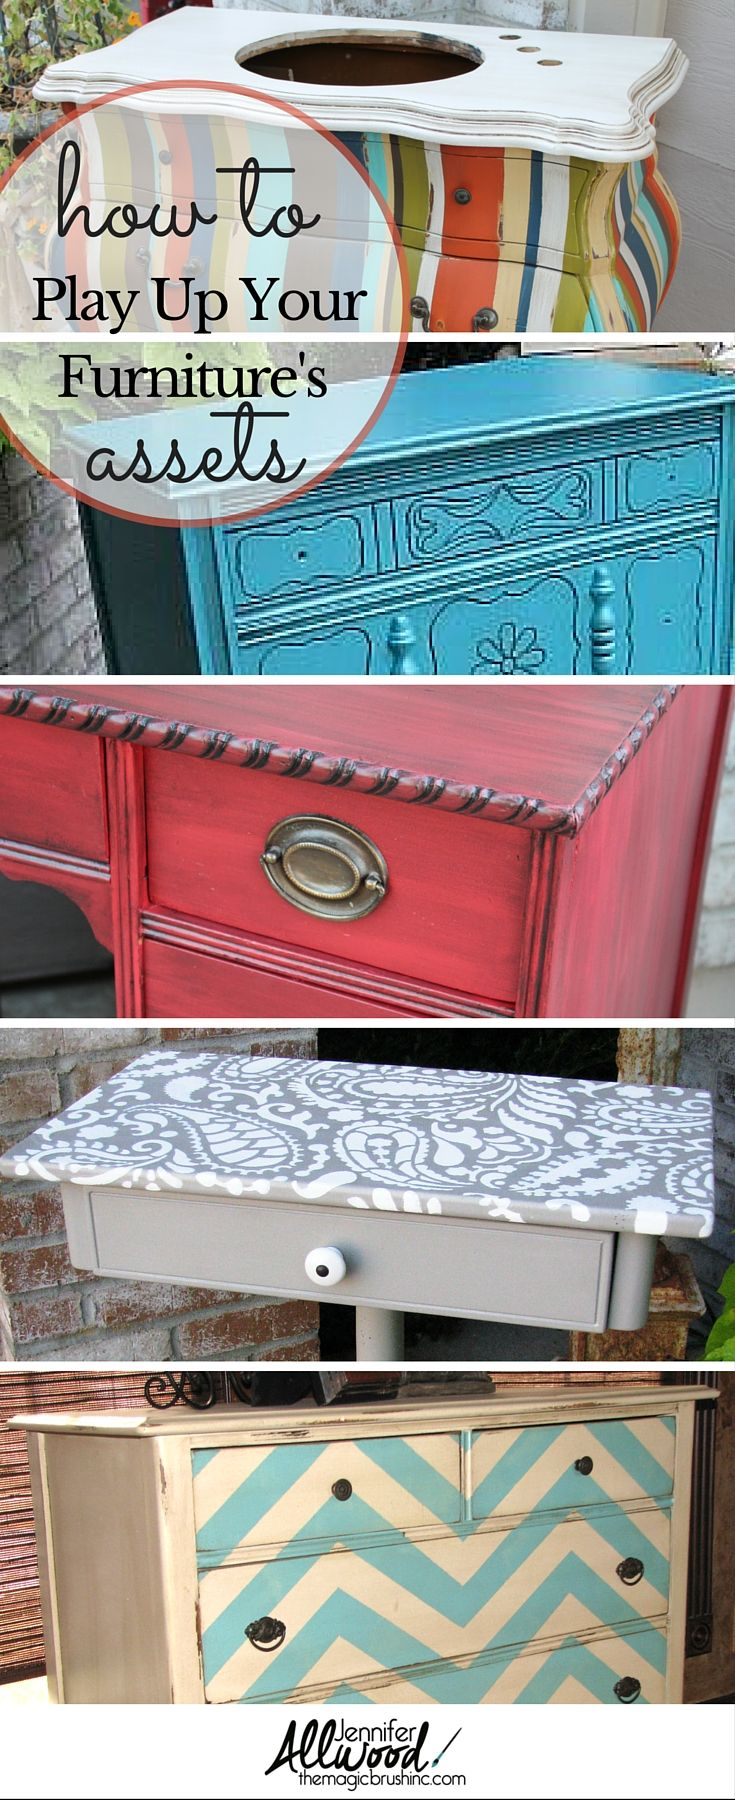 What Not To Wear for Furniture! DIY Repainting Used Furniture. How to play up each piece's unique details and how to make boring pieces interesting again with paint, stain, stencil, knobs and decoupage. So many helpful ideas! themagicbrushinc.com